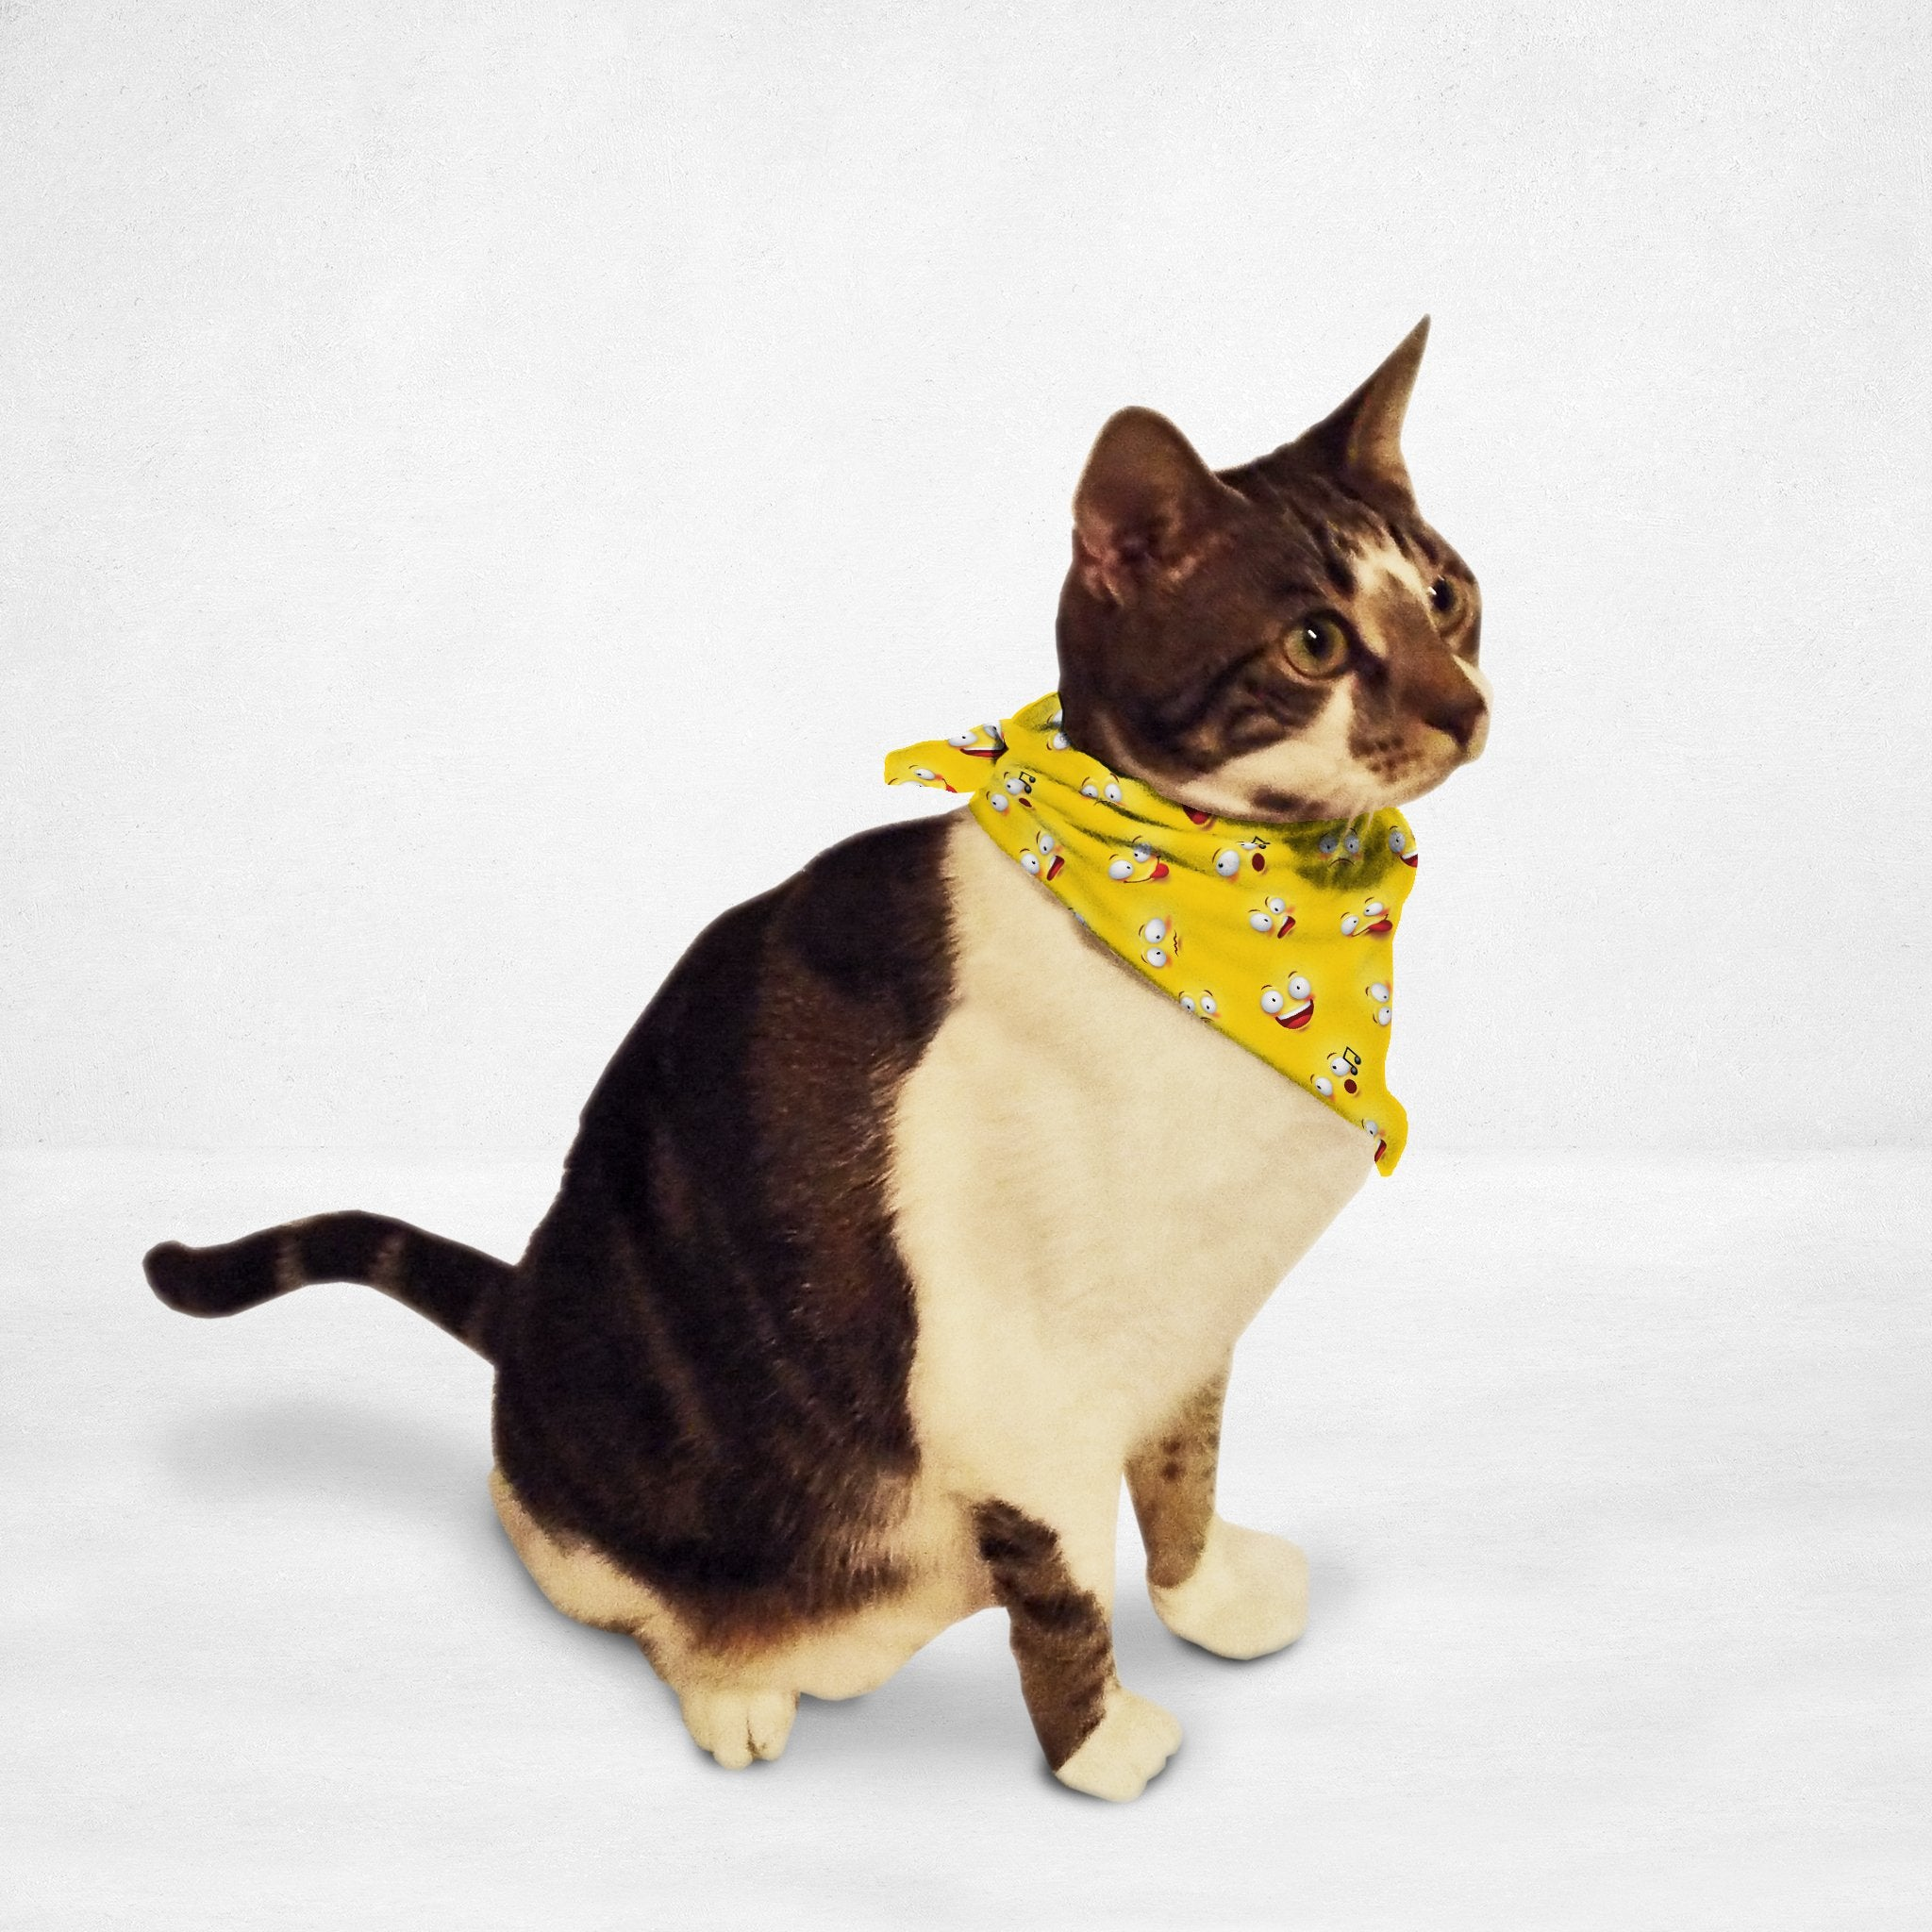 Emoji Wall Cat & Dog Bandana